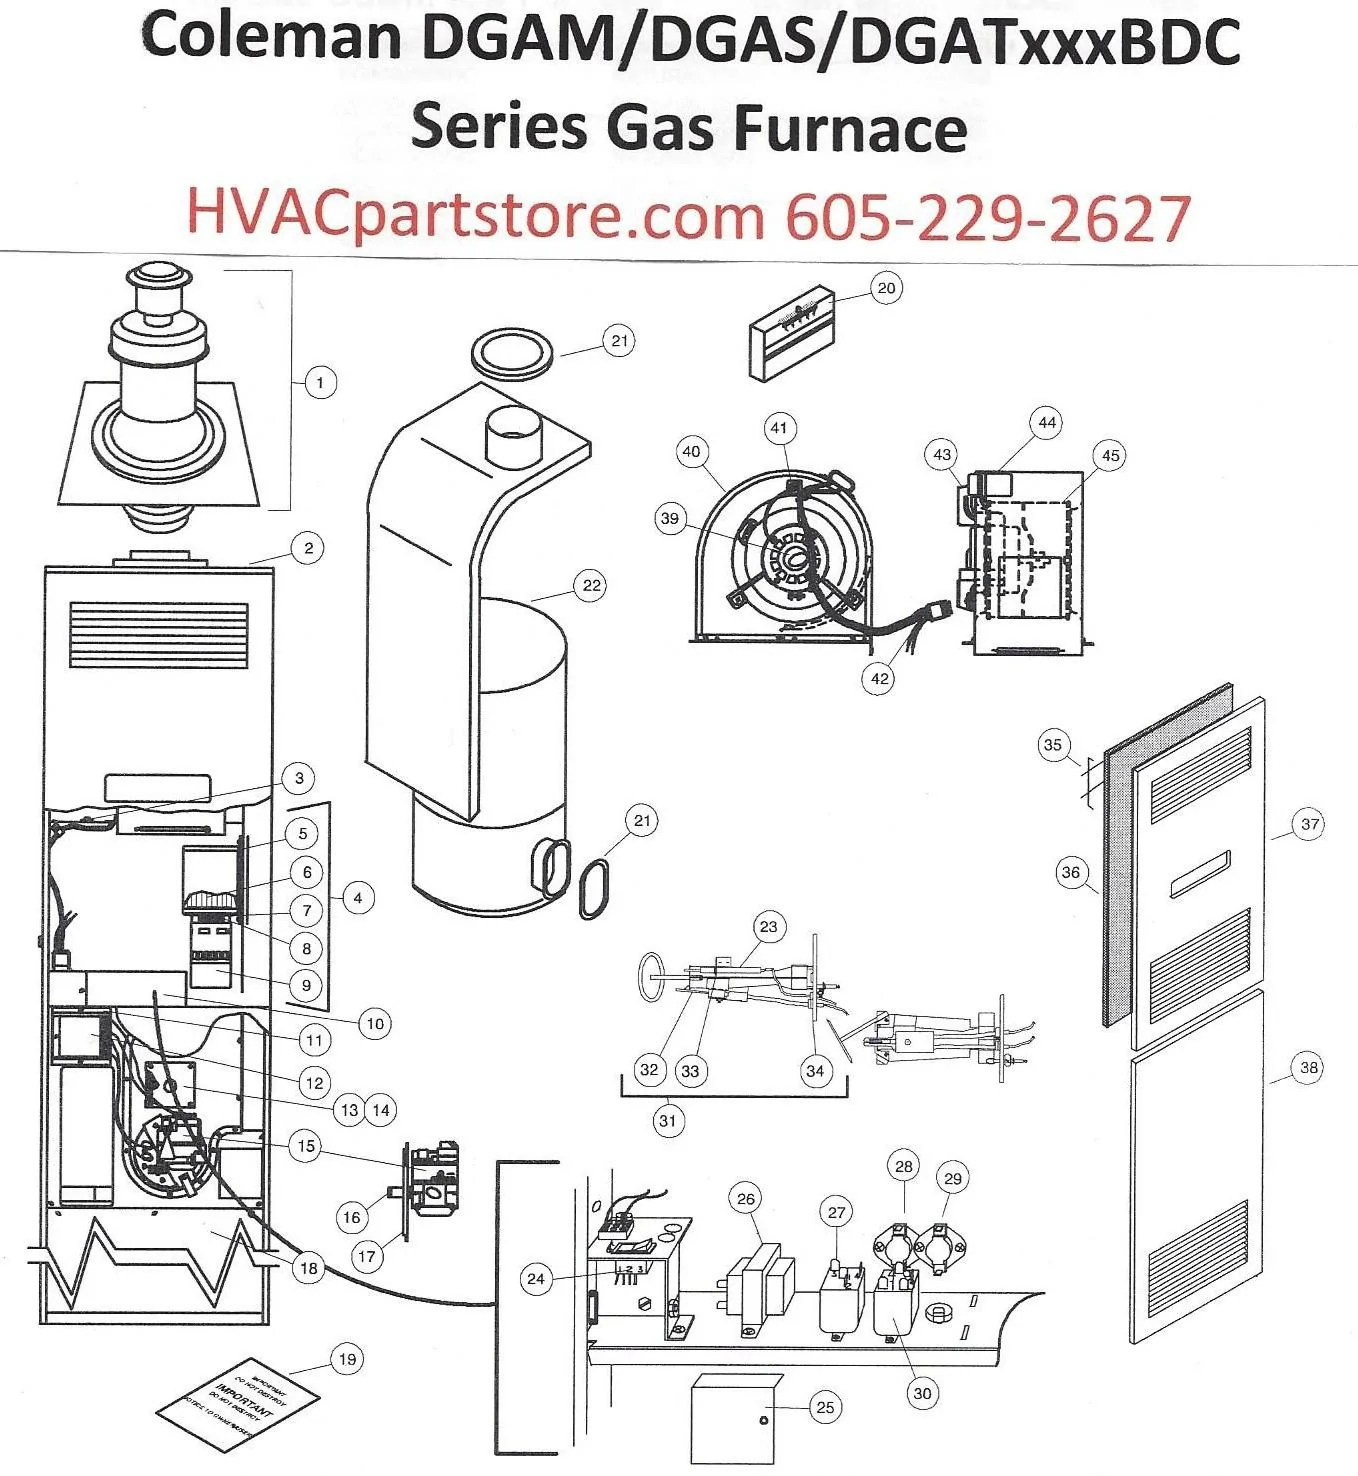 medium resolution of dgat070bdc coleman gas furnace parts hvacpartstore coleman furnace schematic coleman furnace schematics